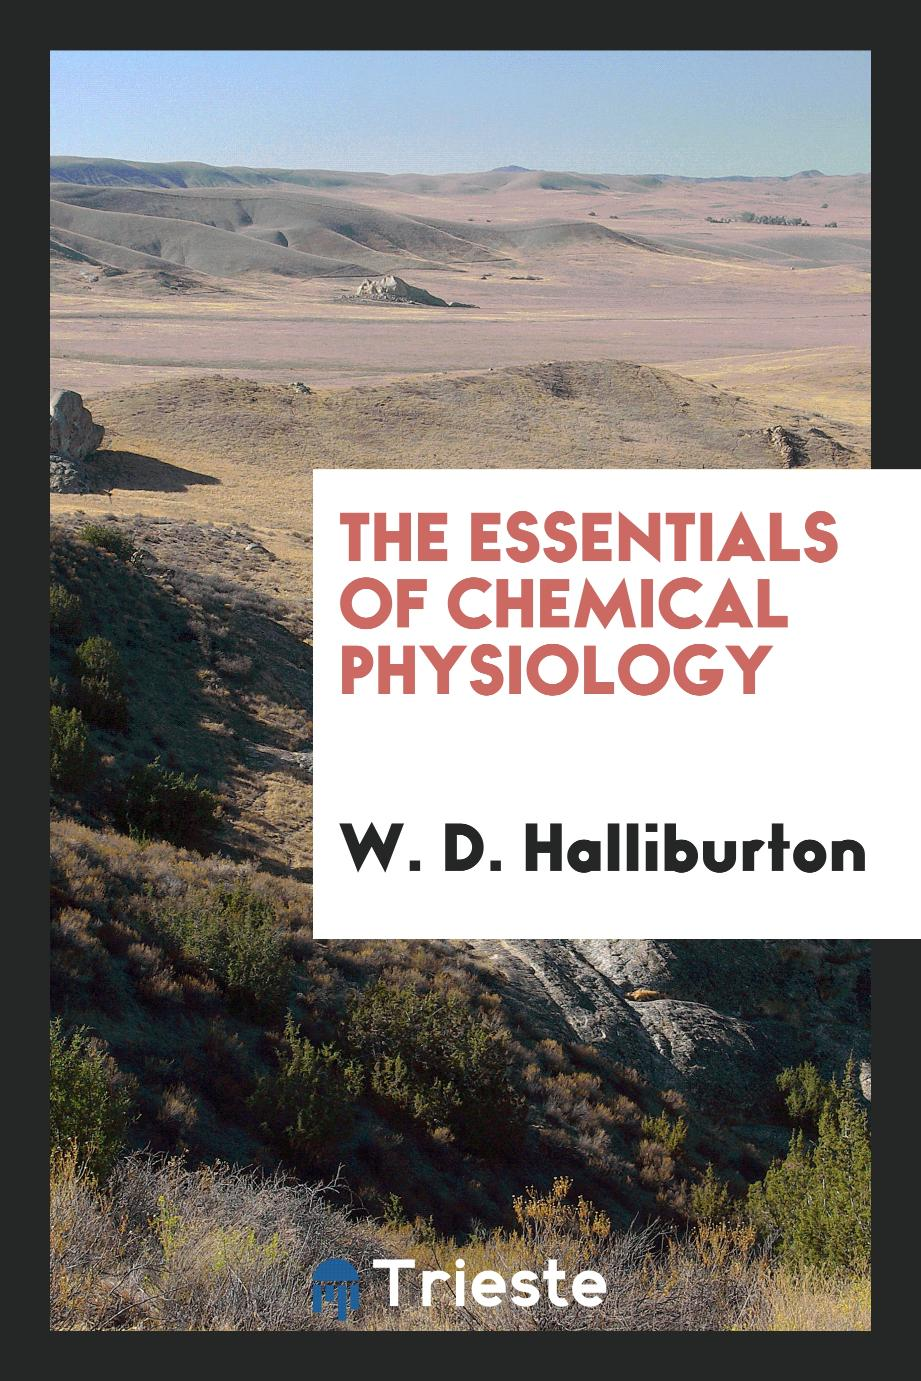 The essentials of chemical physiology